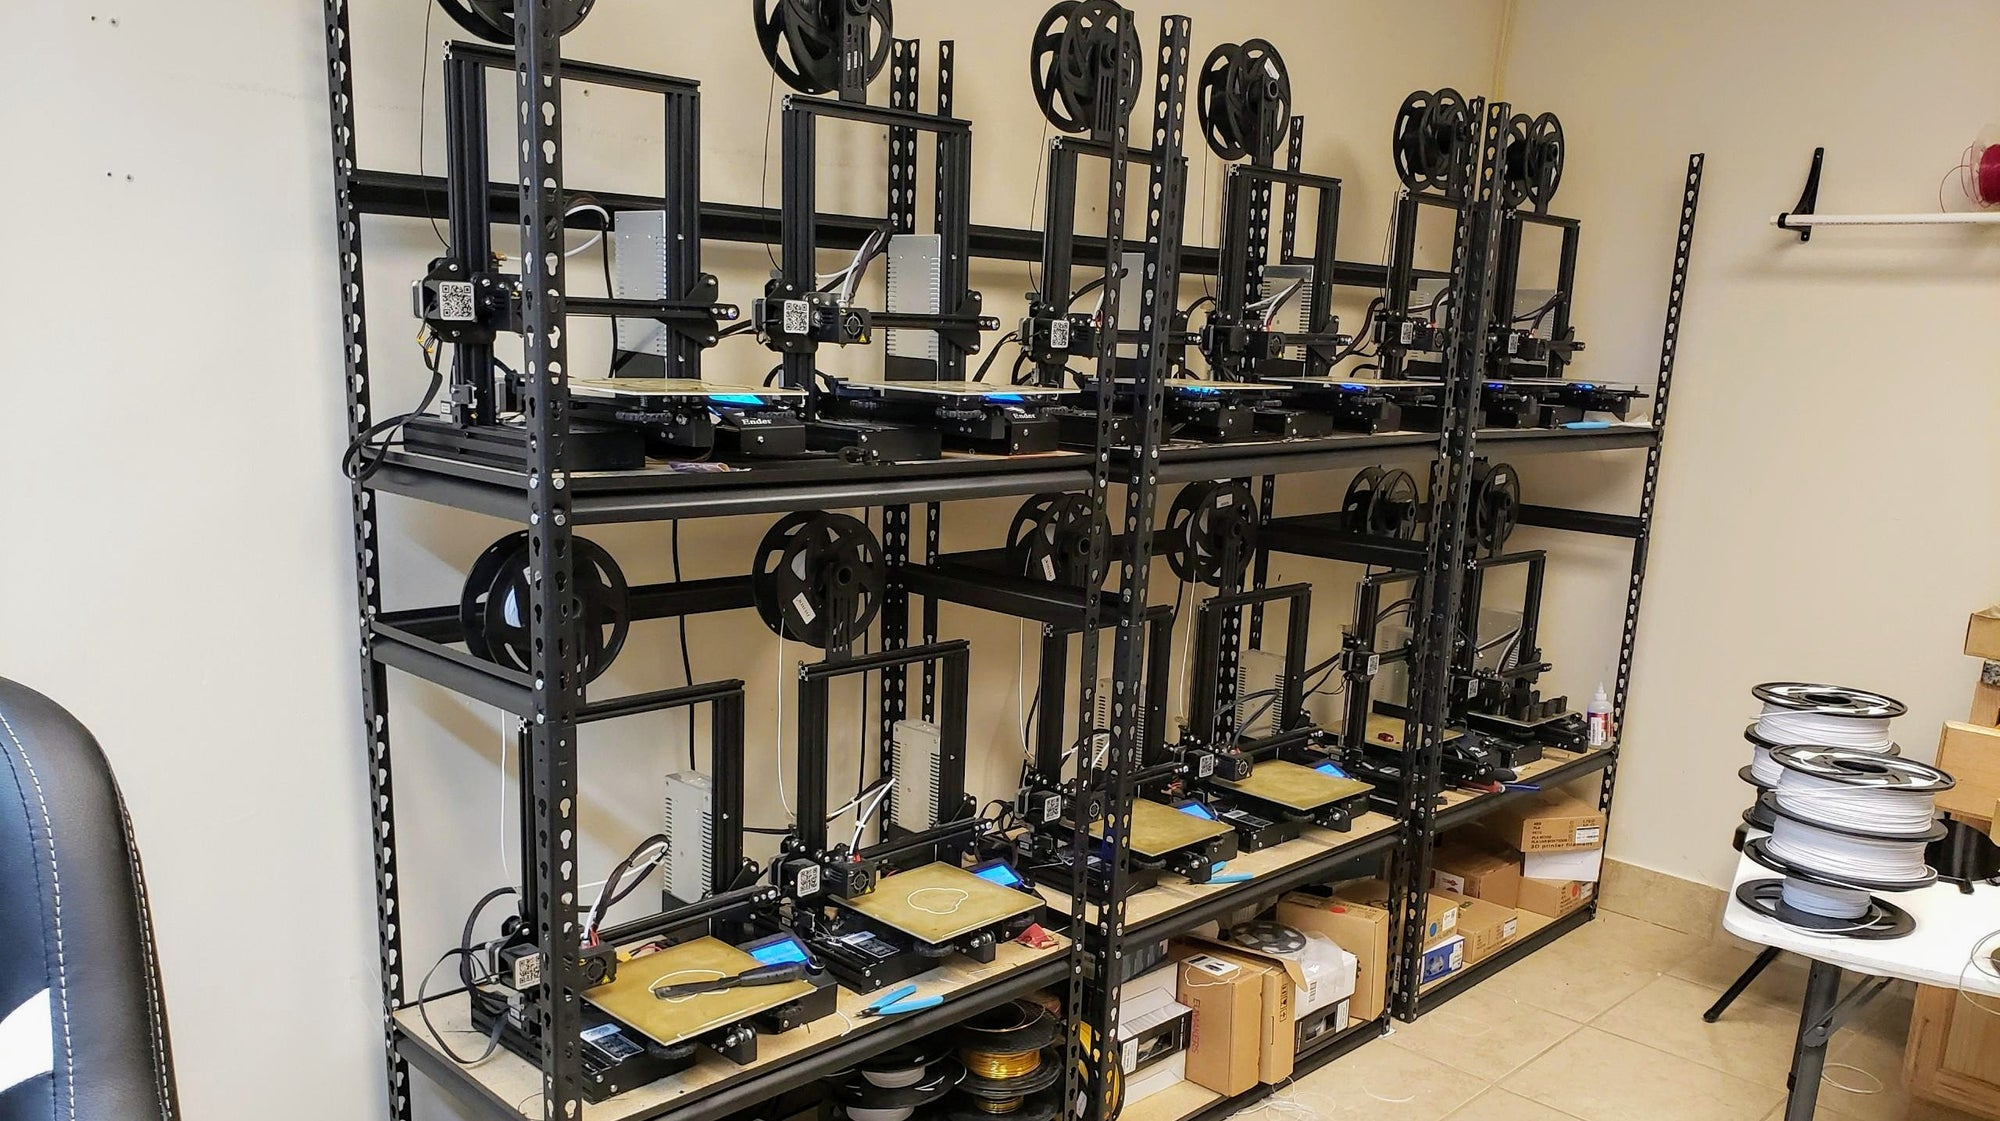 6 Things You Don't Know About 3D Printing